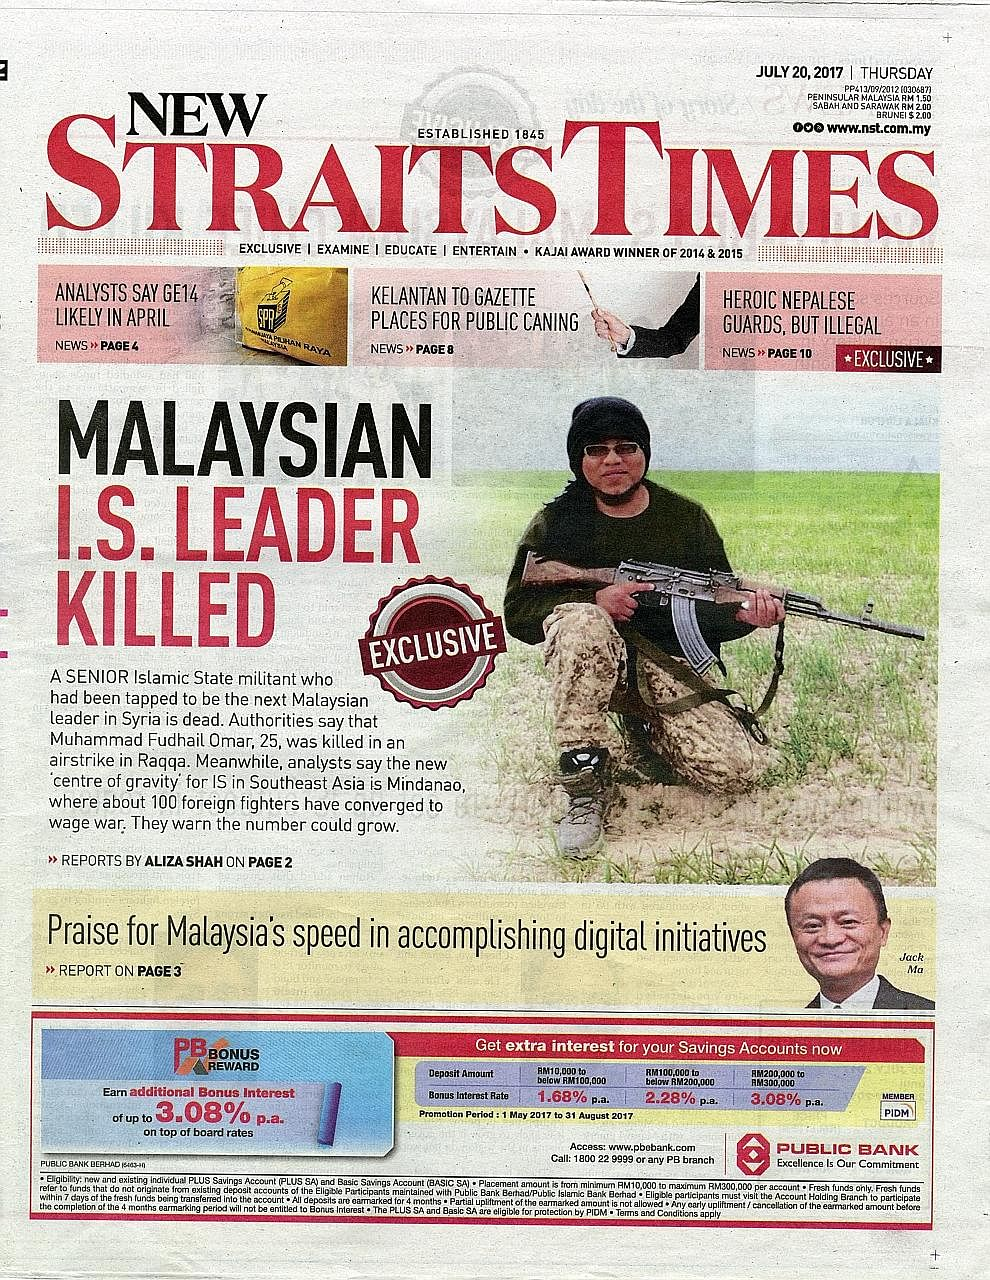 Fudhail's death was front-page news in yesterday's New Straits Times. According to the report, Fudhail joined ISIS in Syria in late 2014, where he taught the children of ISIS members Quran recitation, and guarded security posts. He also spread the gr